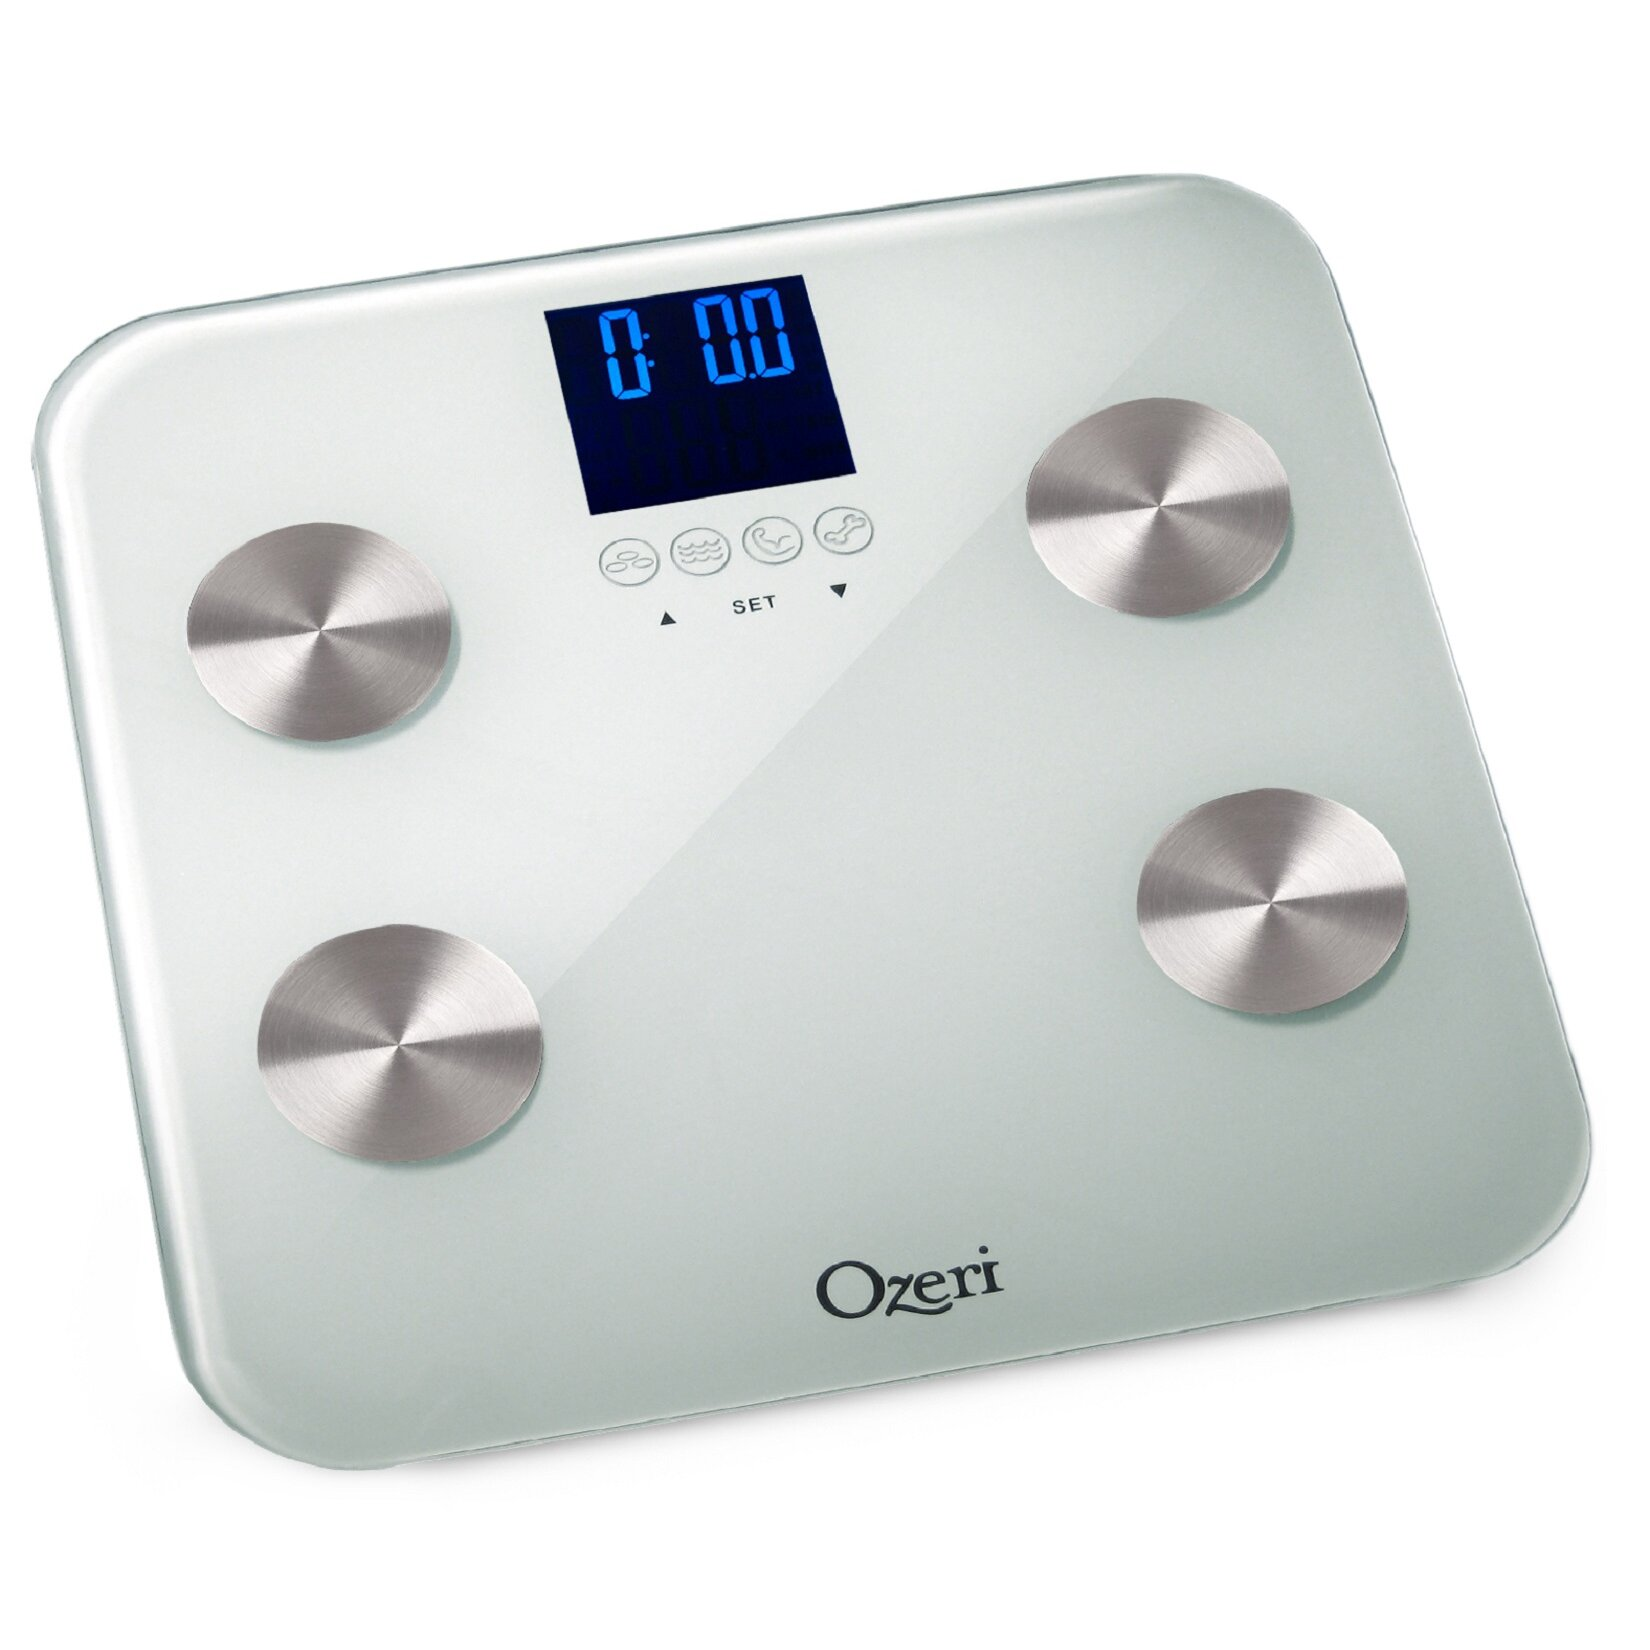 Ozeri Touch 440 lbs Total Body Bath Scale   Auto Recognition and Infant Tare Technology. Ozeri Touch 440 lbs Total Body Bath Scale   Auto Recognition and